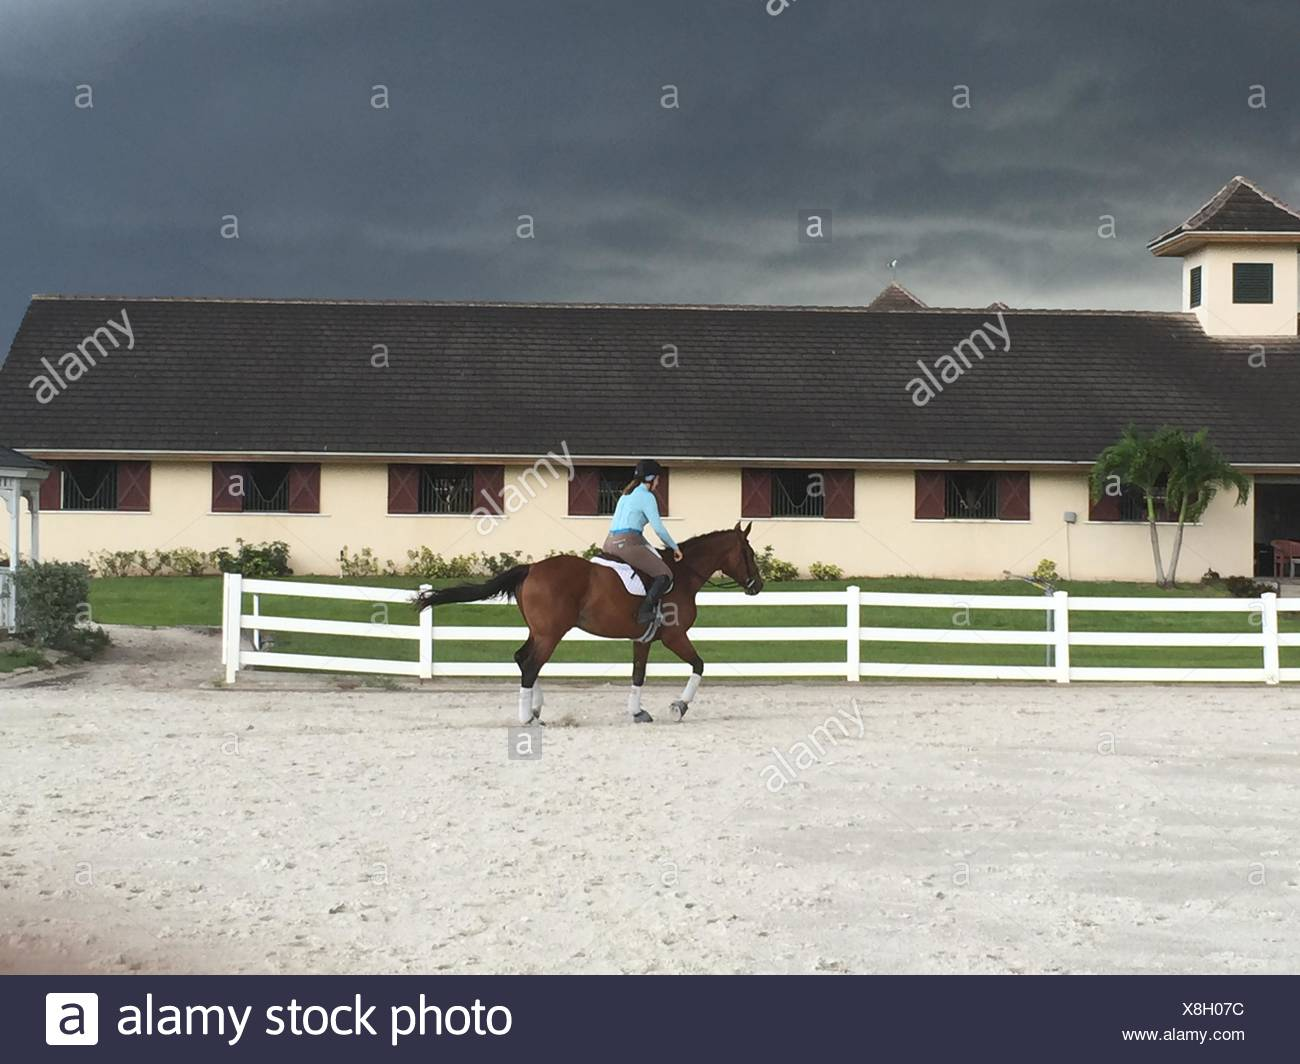 Riding horse in a storm - Stock Image